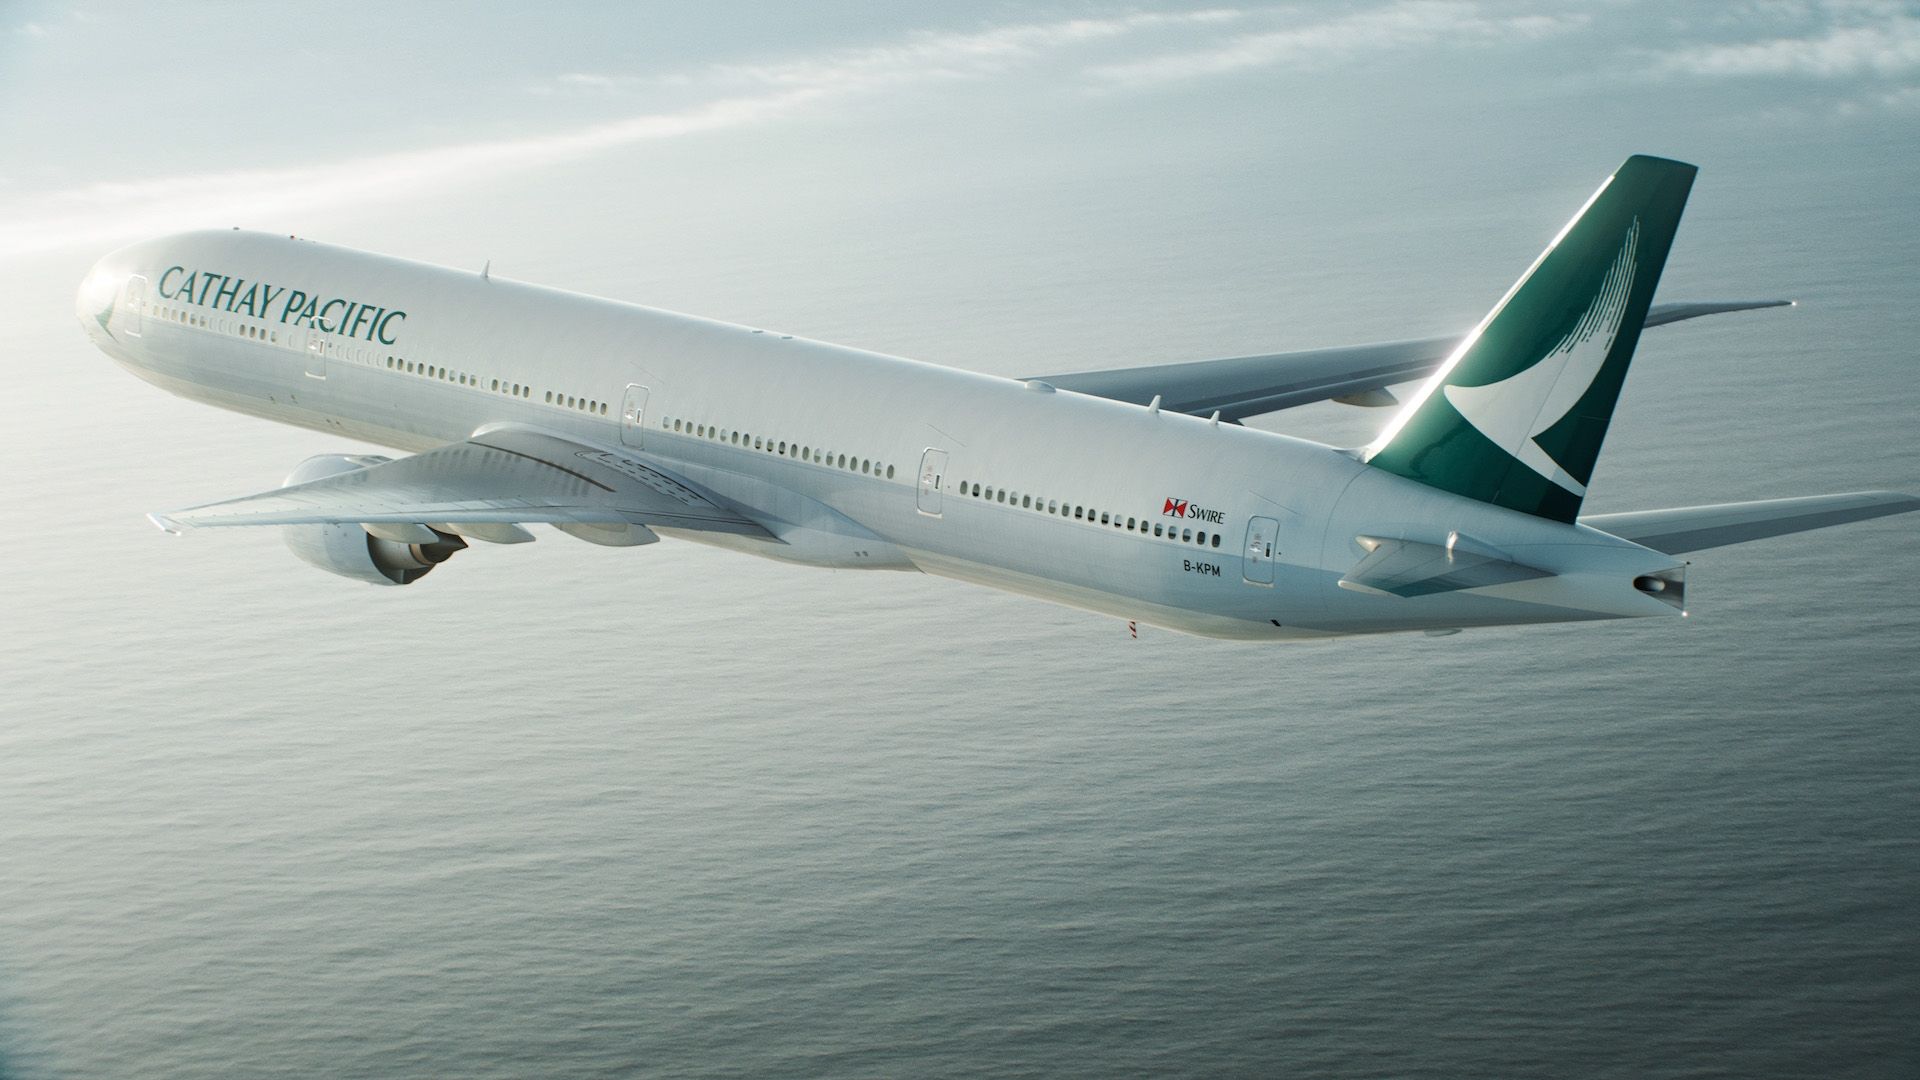 cathay pacific 2 essay Cathay pacific has participated in a voluntary programme called fly greener 5 passengers who  just send your request for getting no plagiarism essay https://goo .